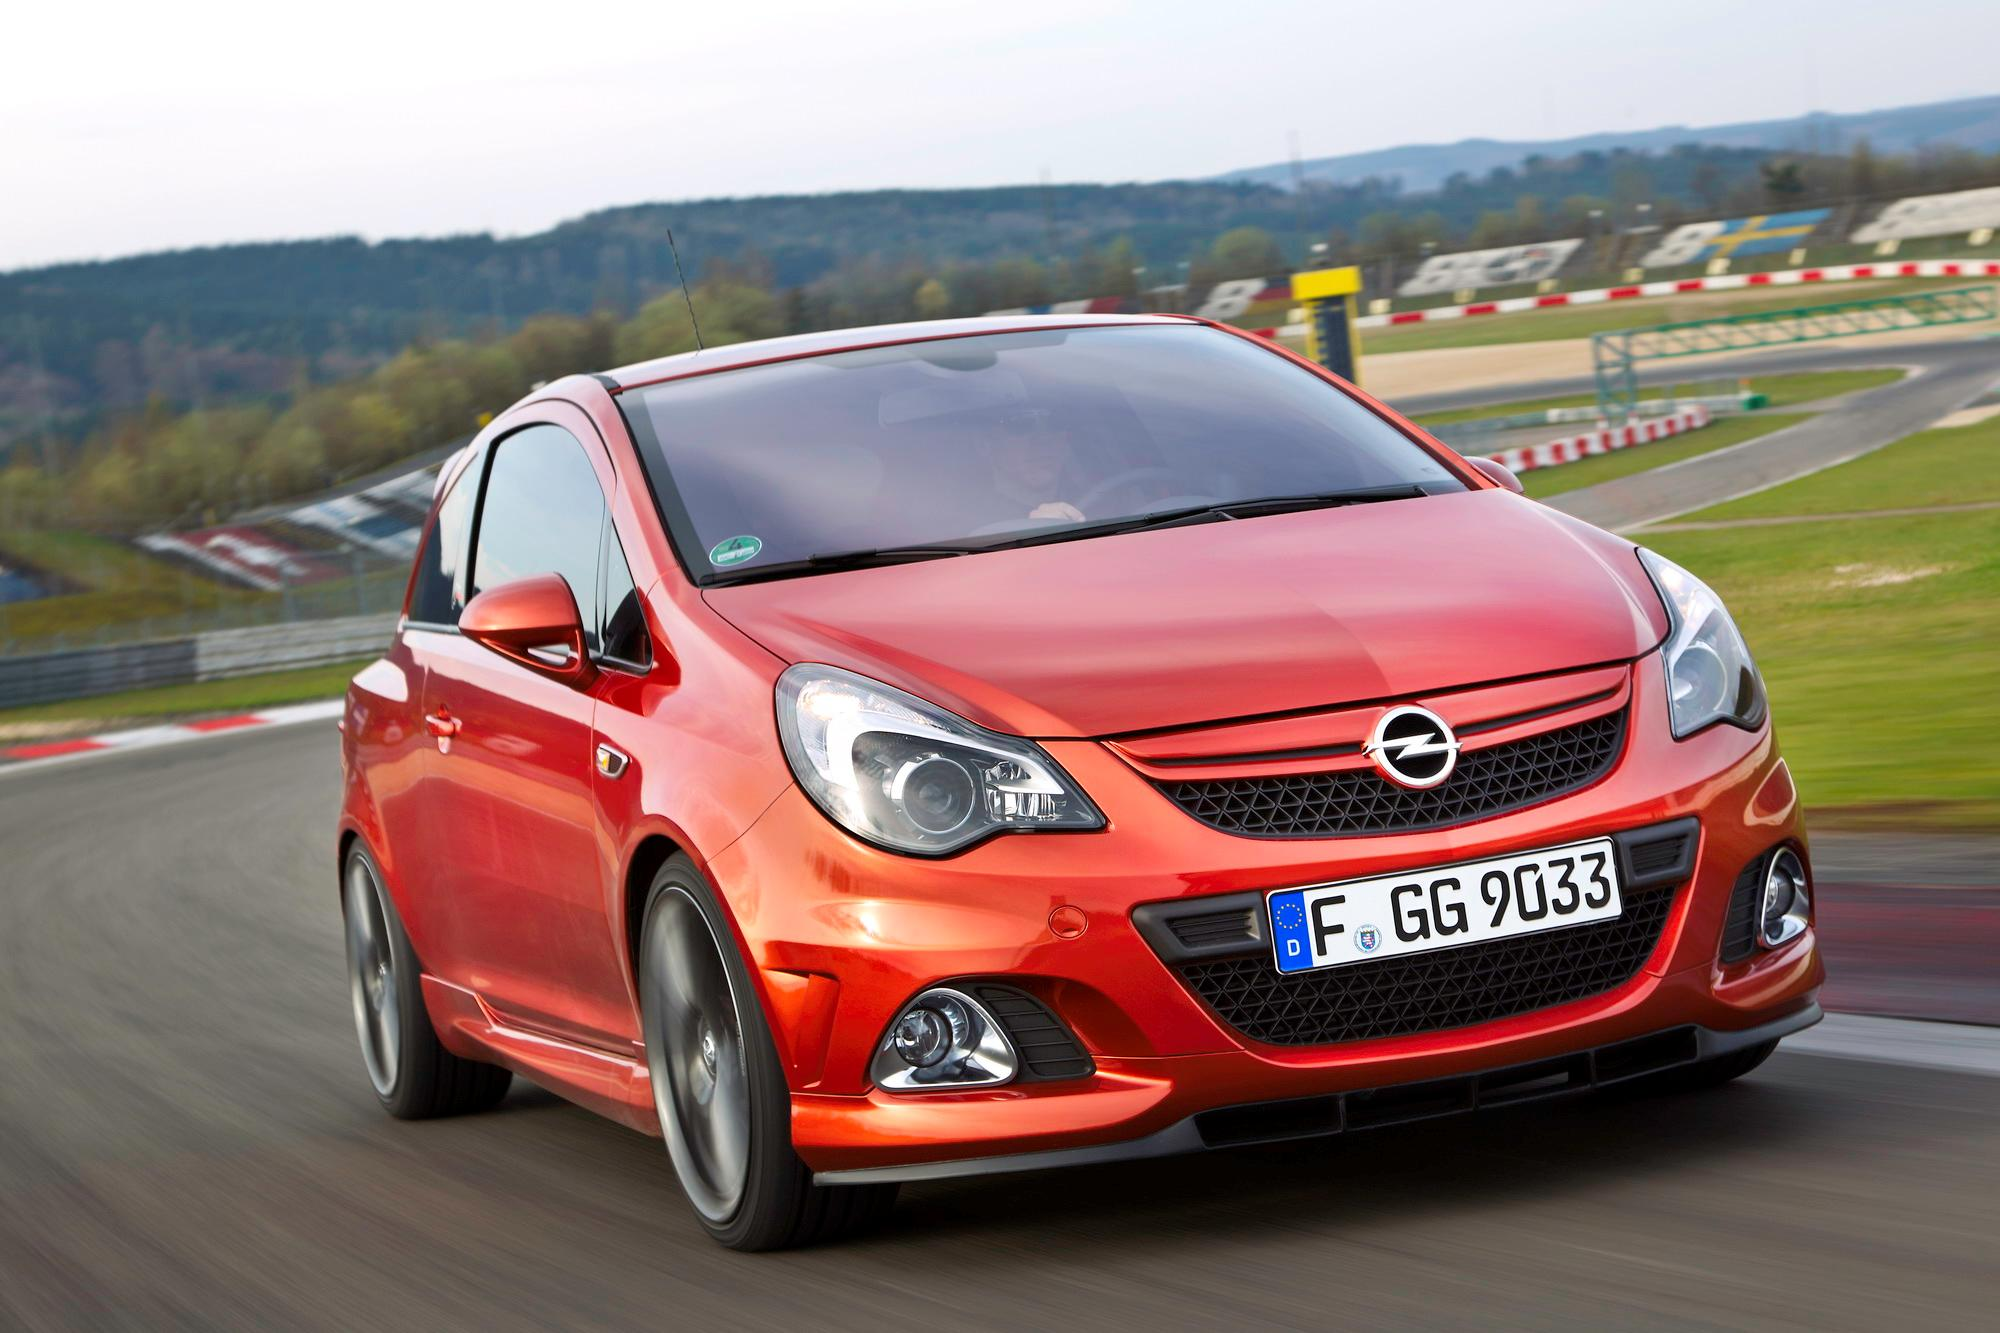 2011 opel corsa opc nurburgring edition review top speed. Black Bedroom Furniture Sets. Home Design Ideas